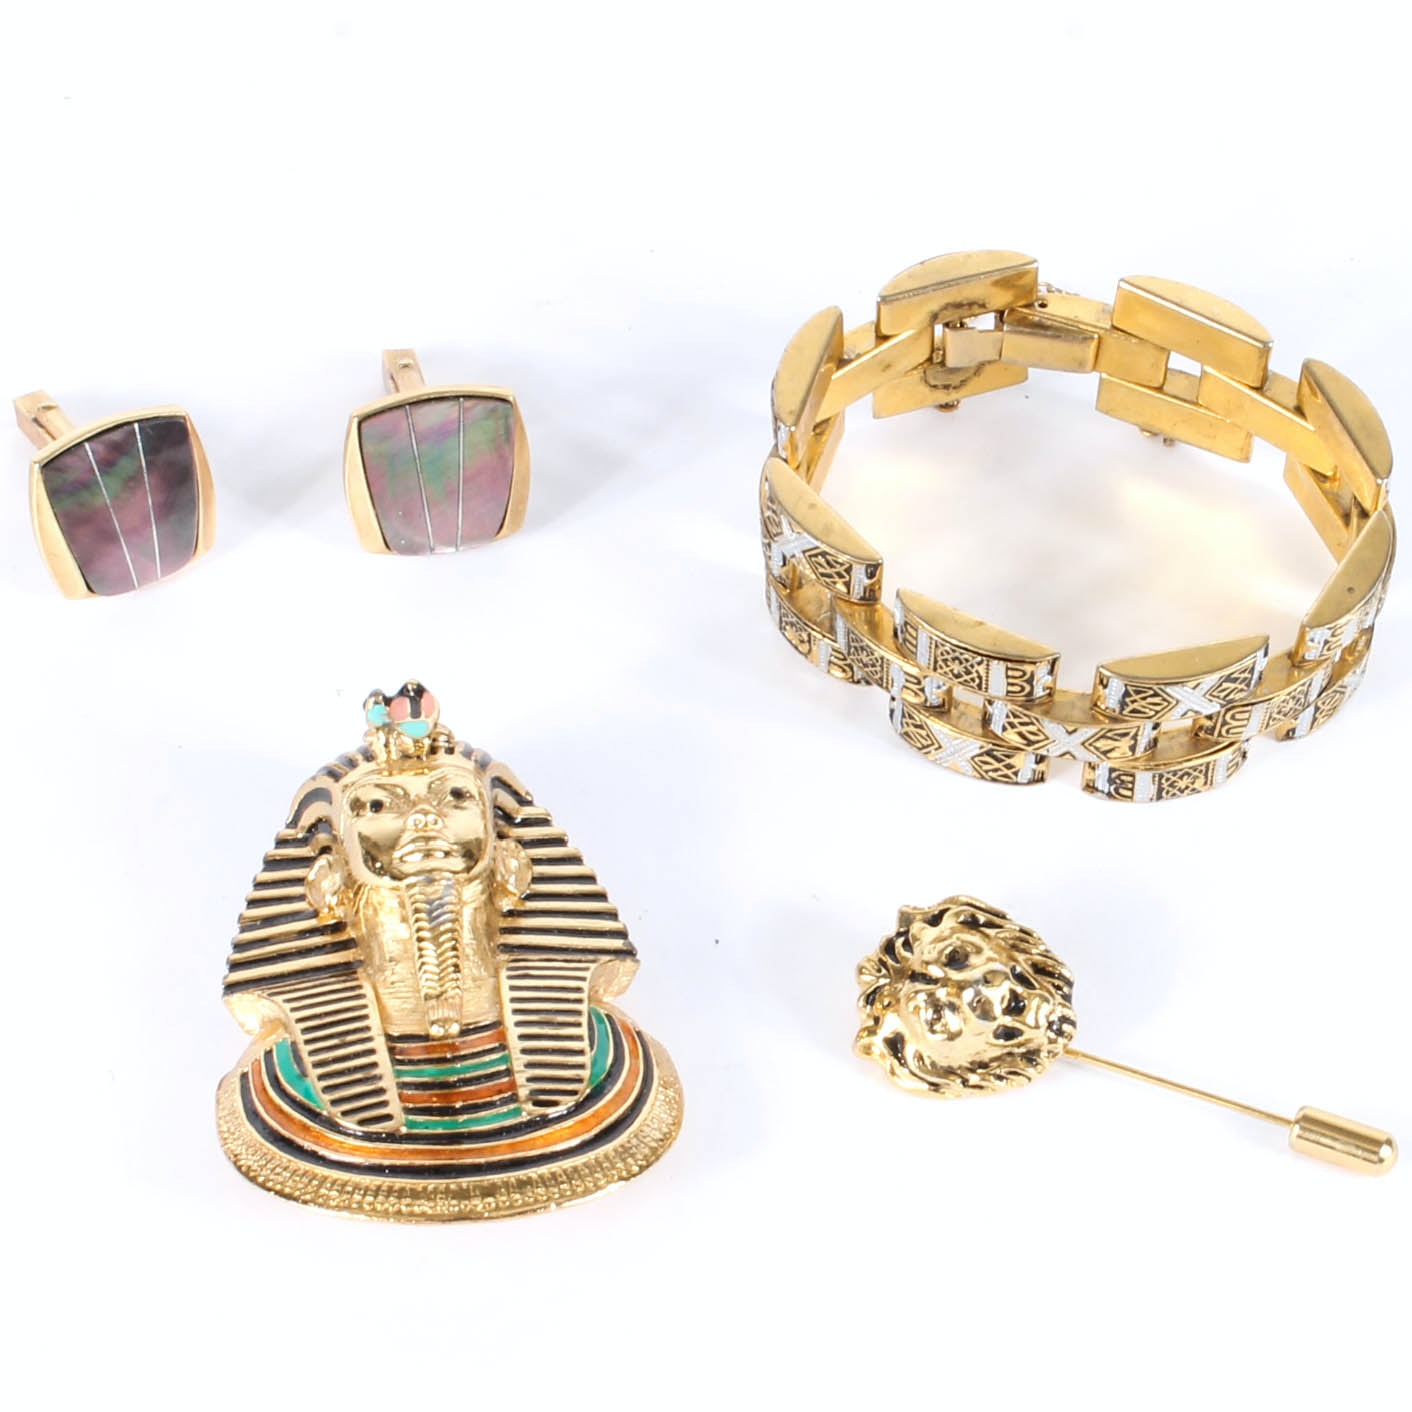 Variety of Gold Tone Costume Jewelry Featuring Eisenberg